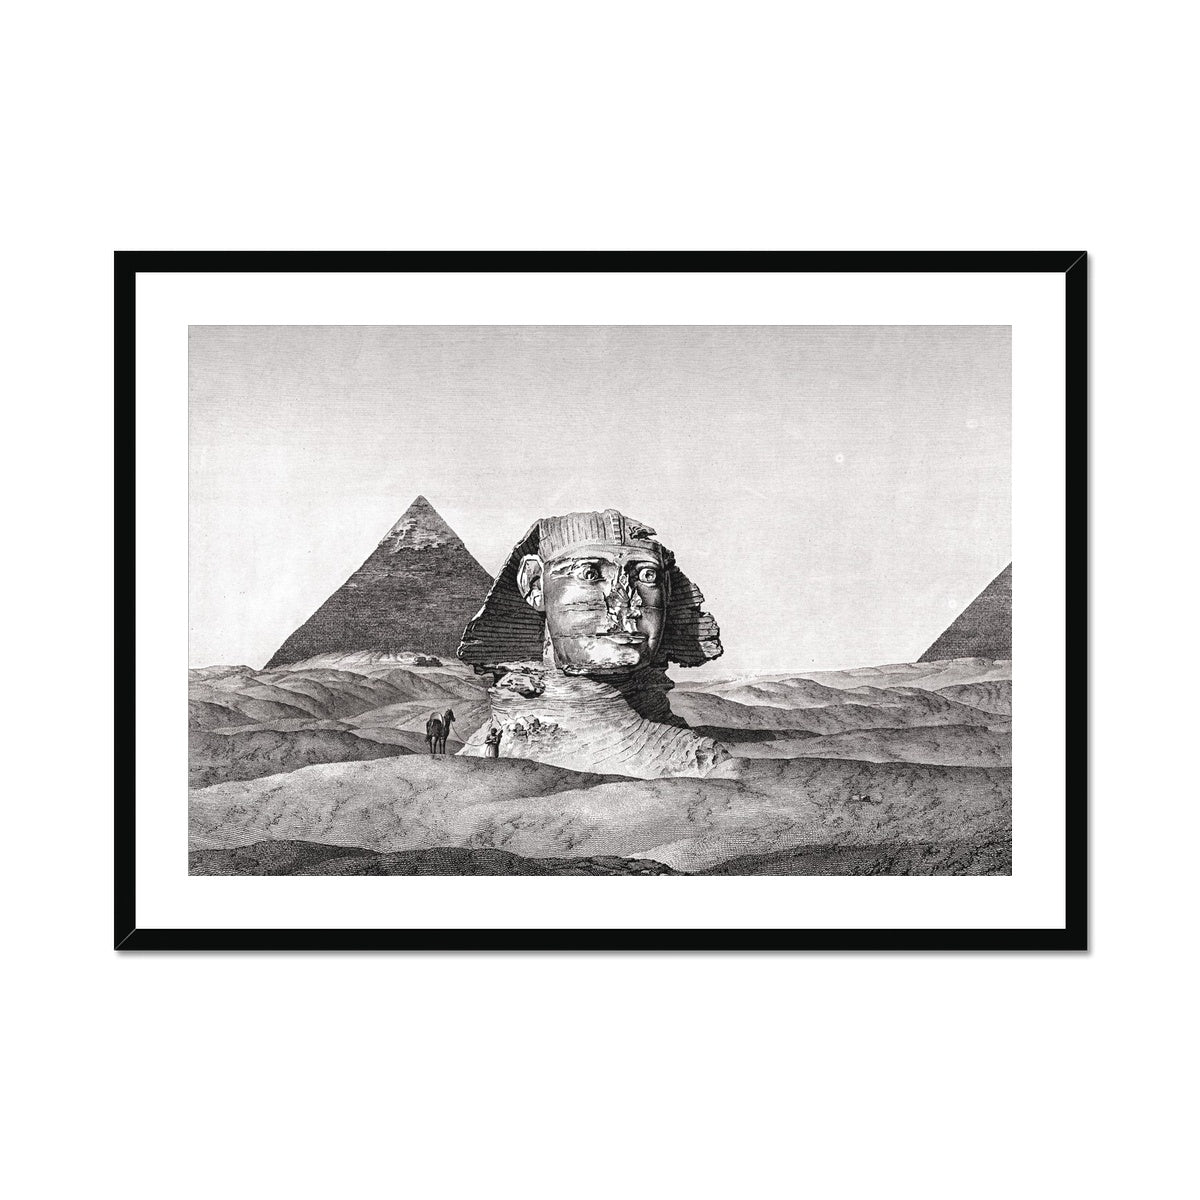 View of the Sphinx 2 - Memphis Egypt -  Framed & Mounted Print